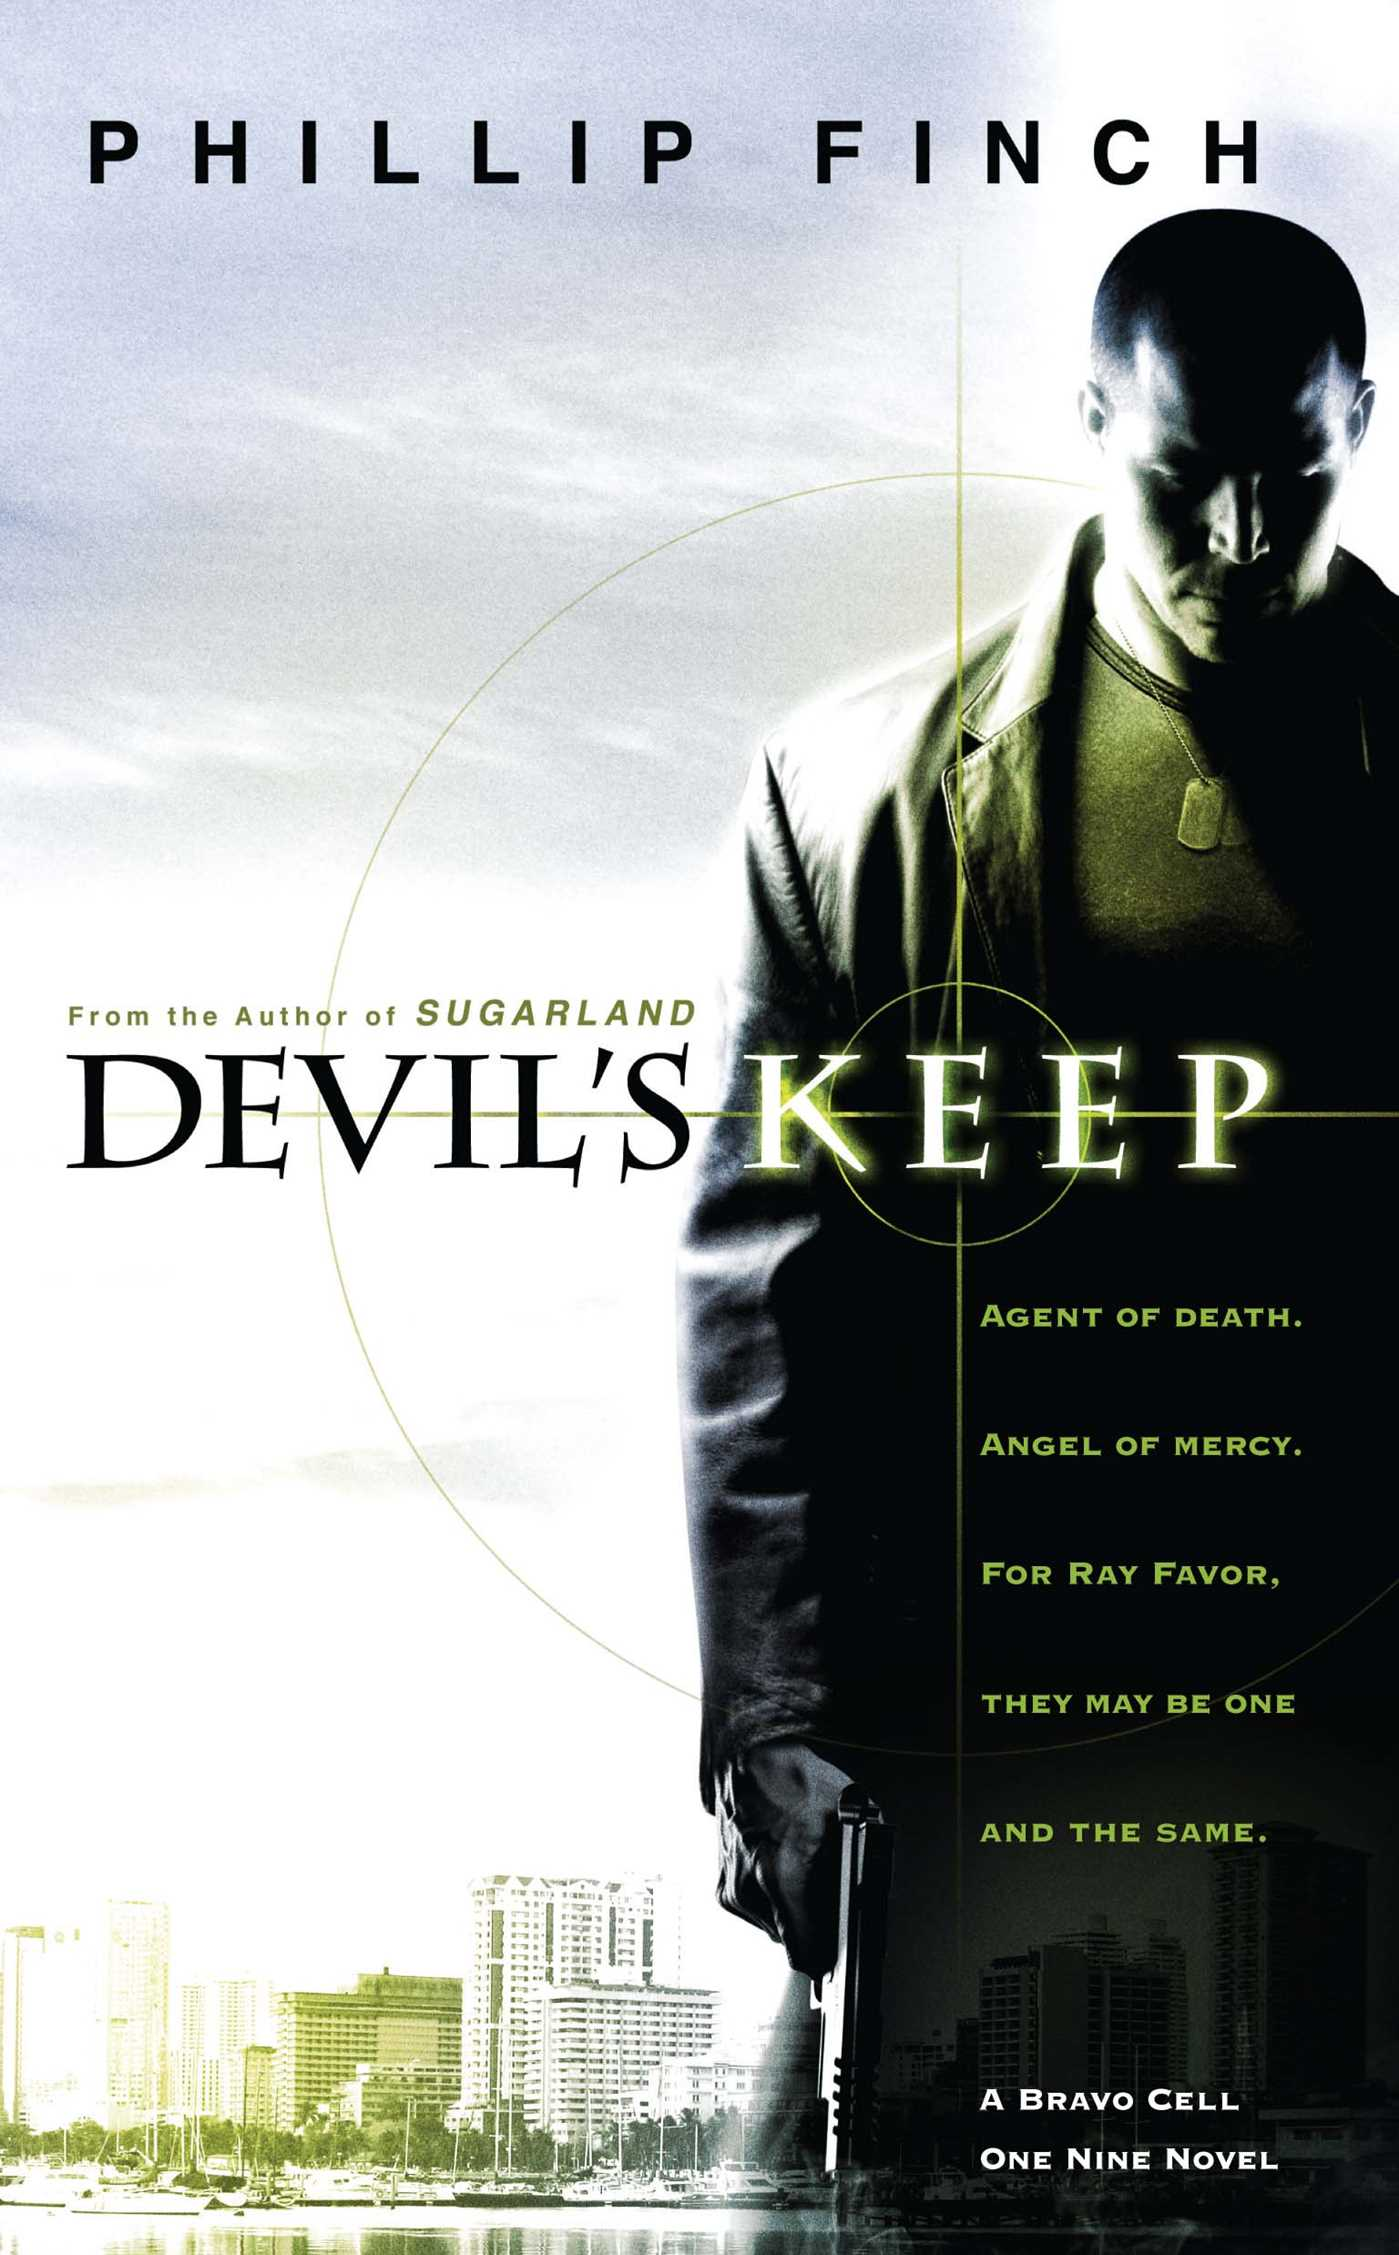 Devils keep 9781439169513 hr